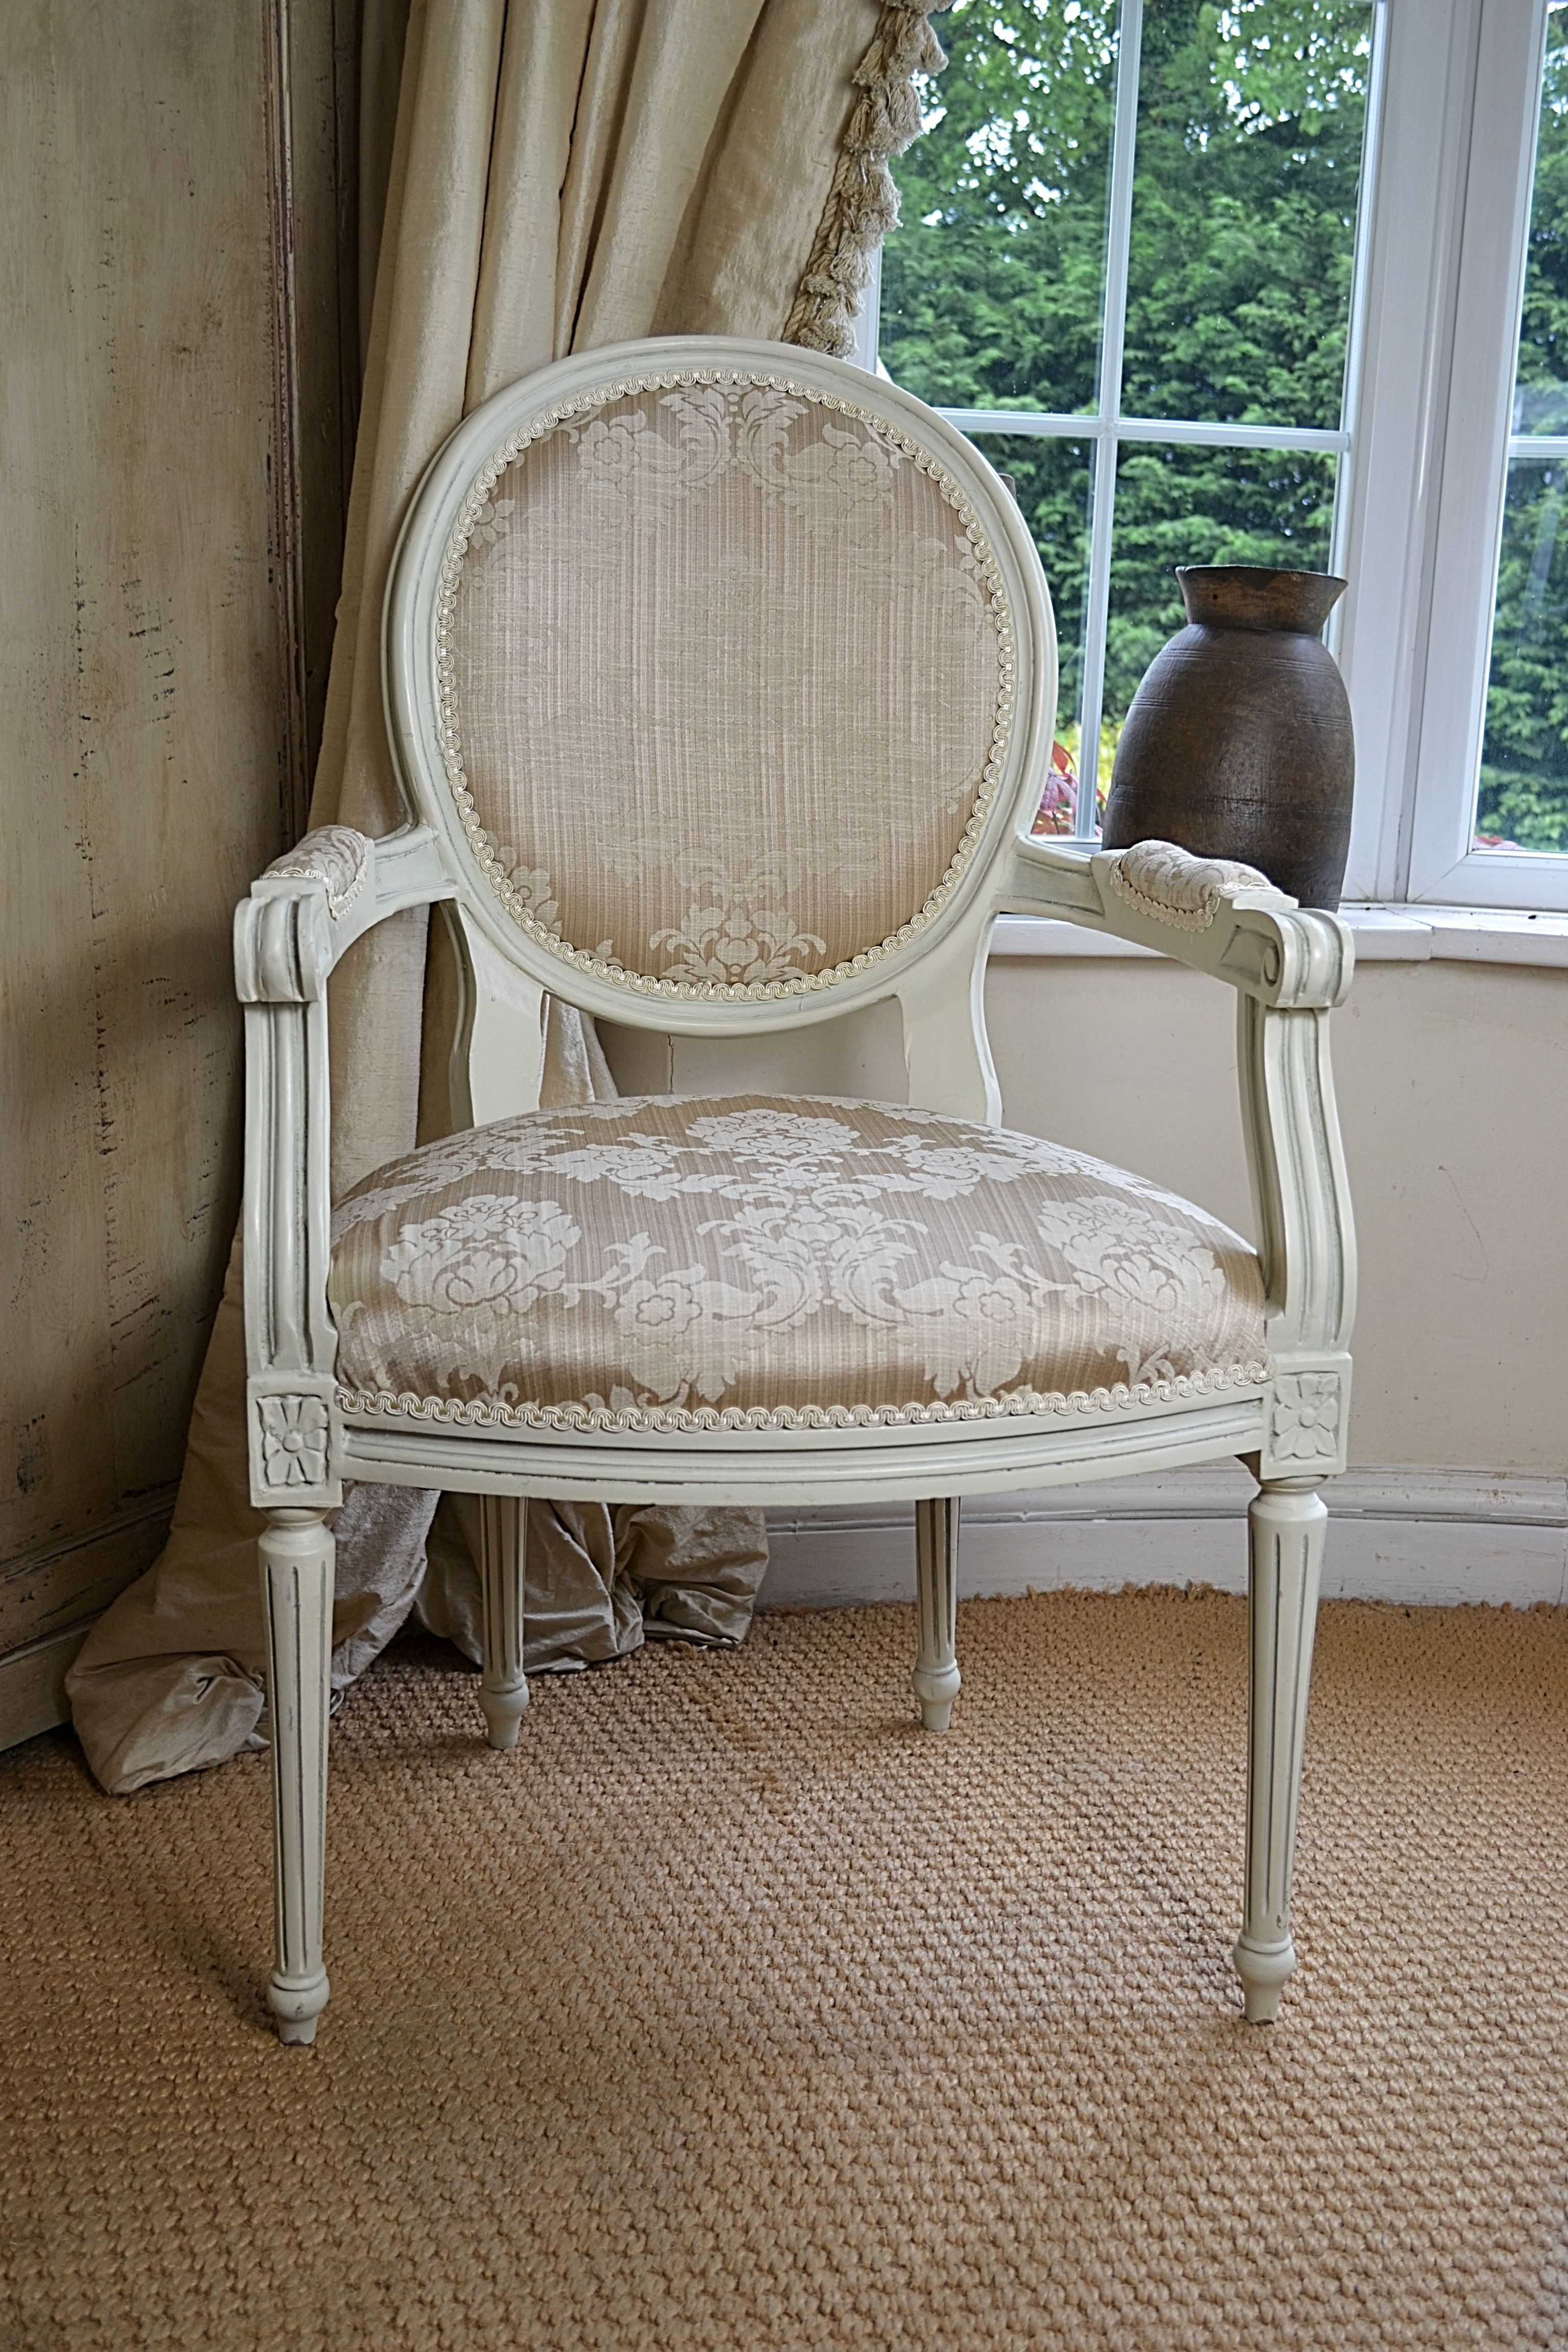 A French style chair painted in cream